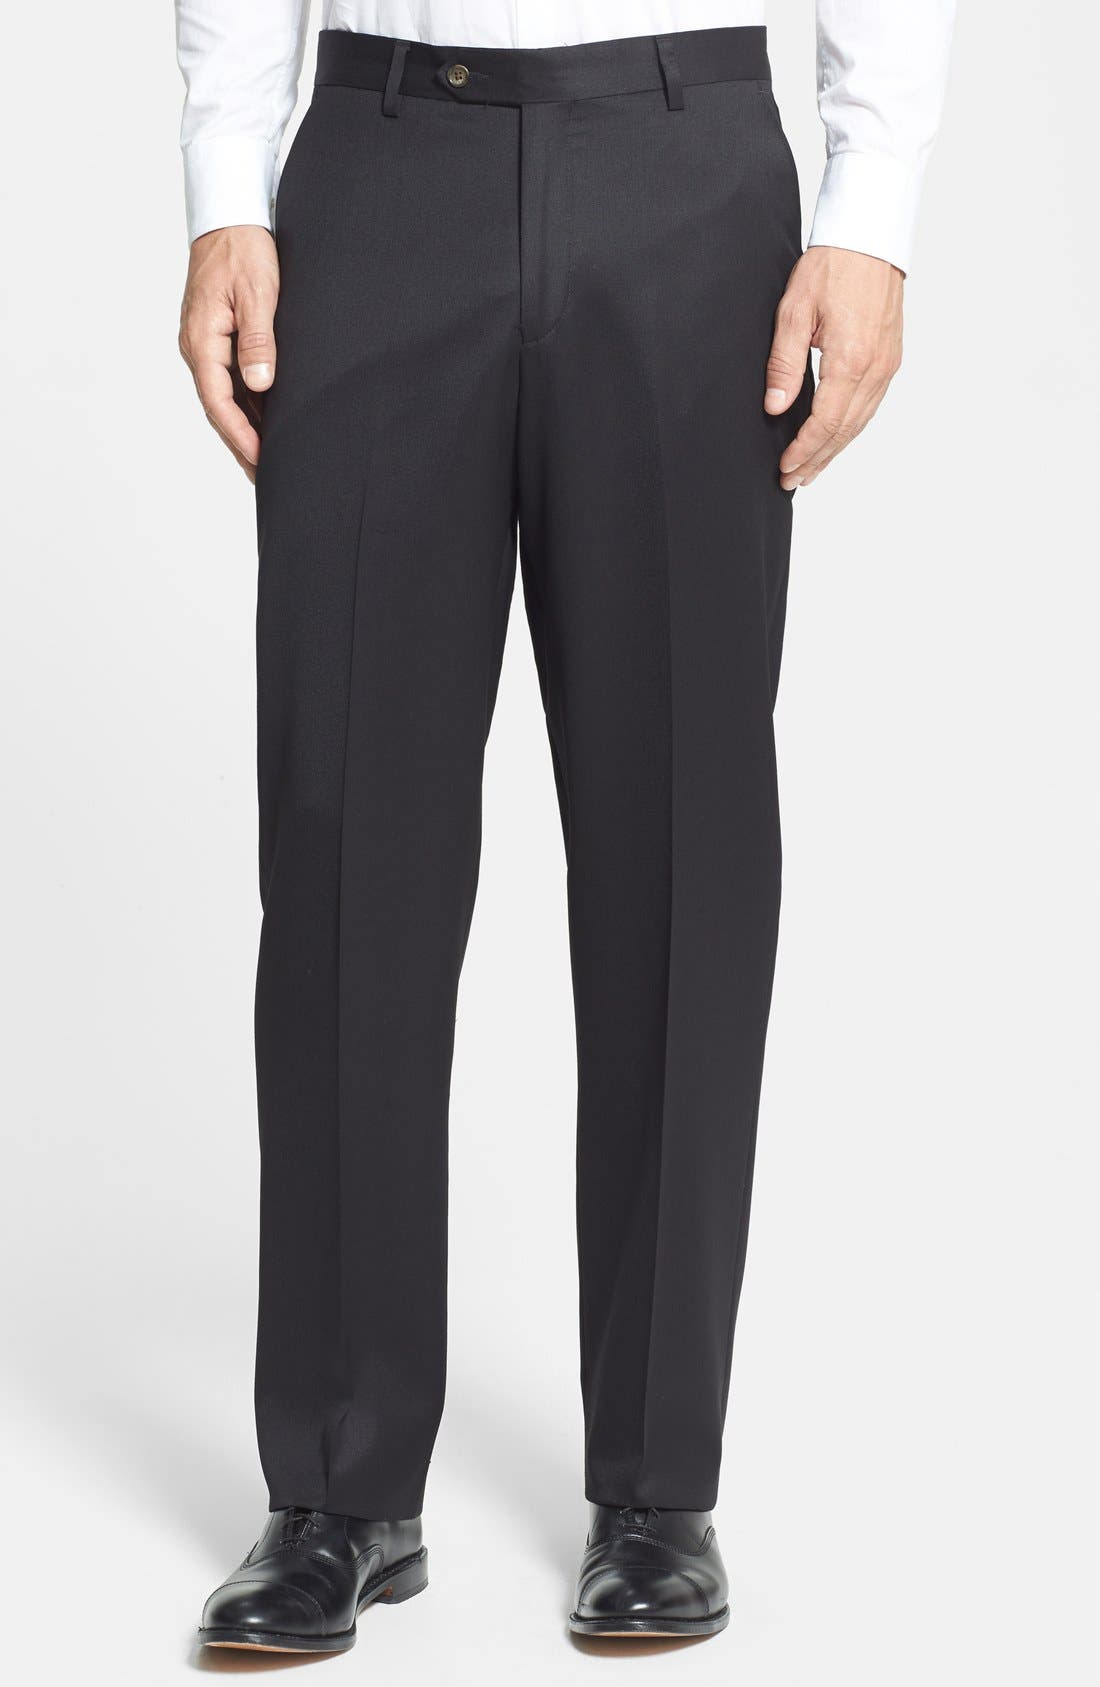 A clean flat-front cut defines sharp trousers fashioned from finely textured super 100s wool gabardine. Style Name: Berle Flat Front Classic Fit Wool Gabardine Dress Pants. Style Number: 463773. Available in stores.